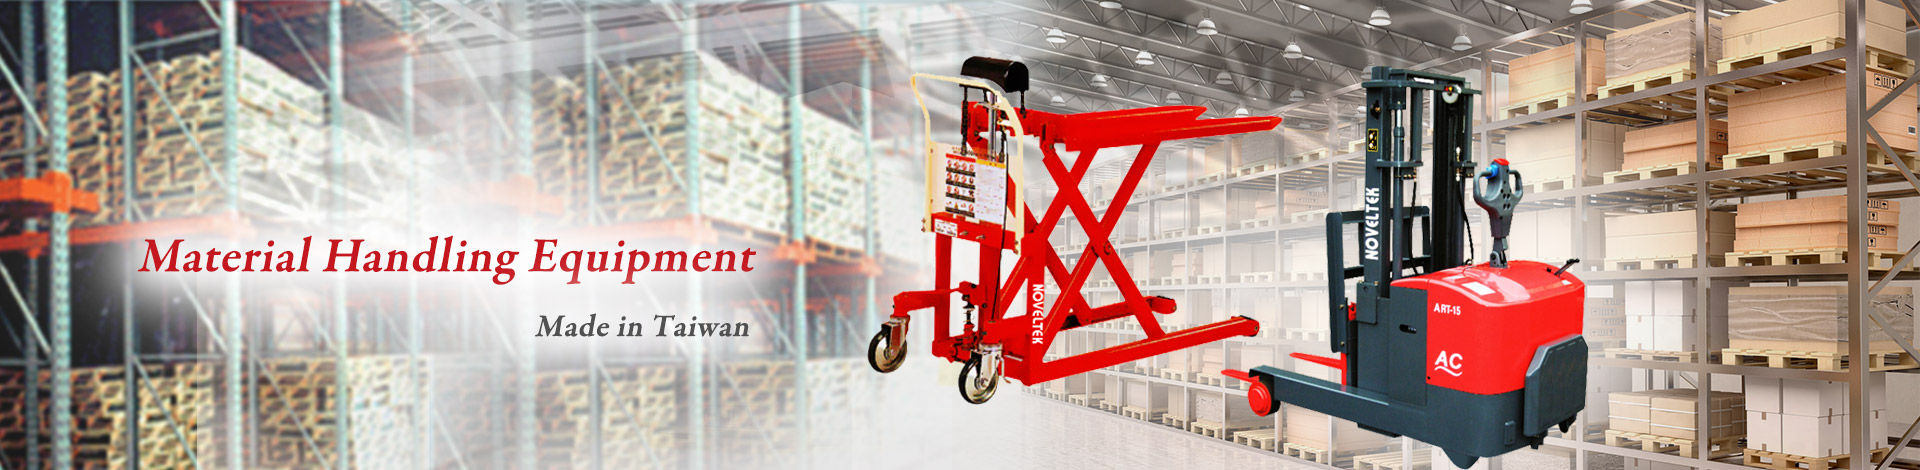 Noveltek Industrial Manufacturing Inc. is a leading manufacturer specialized in Powered Pallet Truck, Counter Balanced Reach Truck, Pallet Truck.